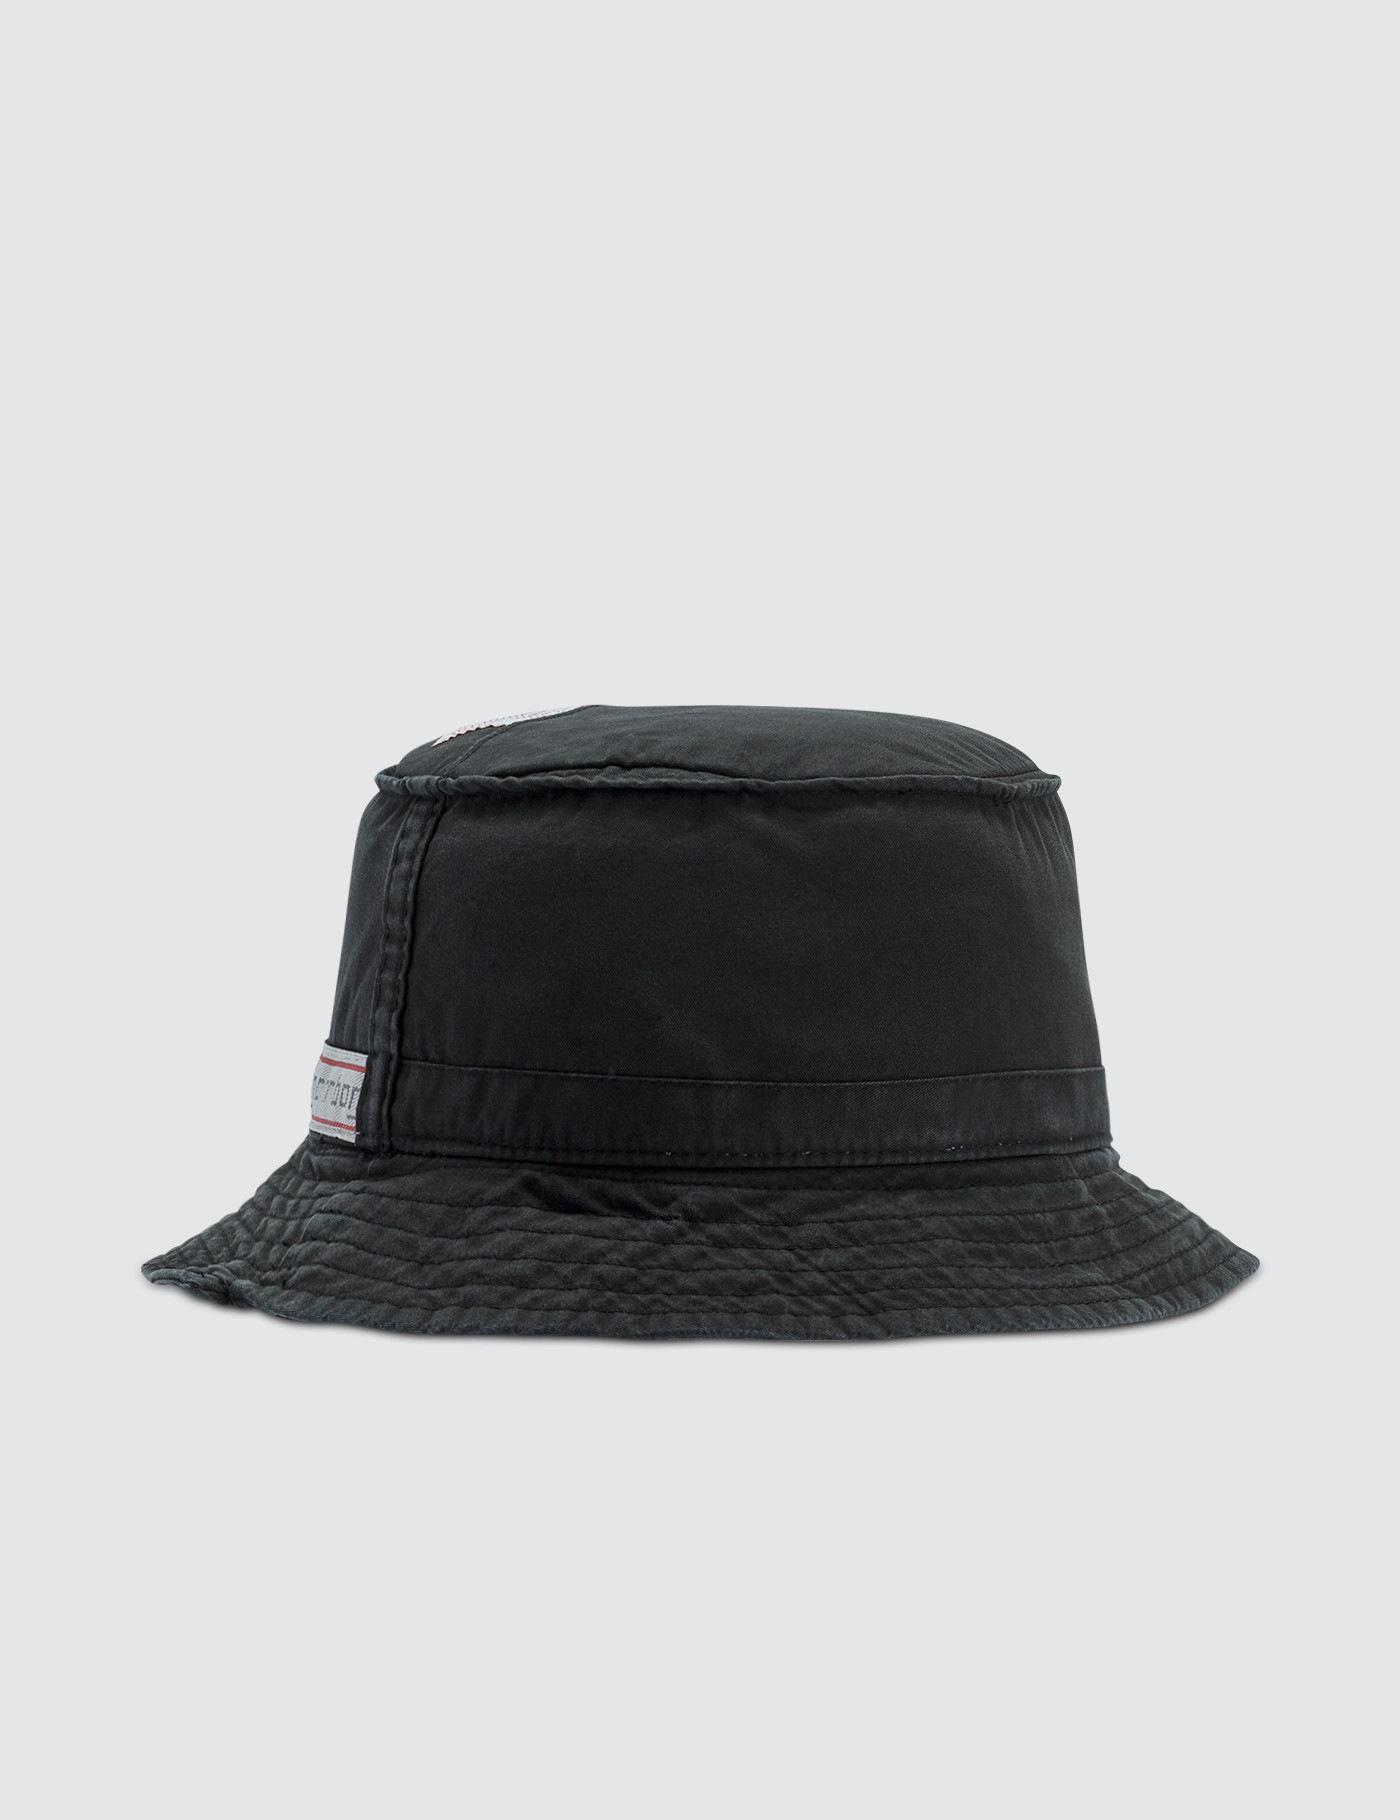 f03571360 Reconstructed Data Cable Bucket Hat, C2H4 Los Angeles